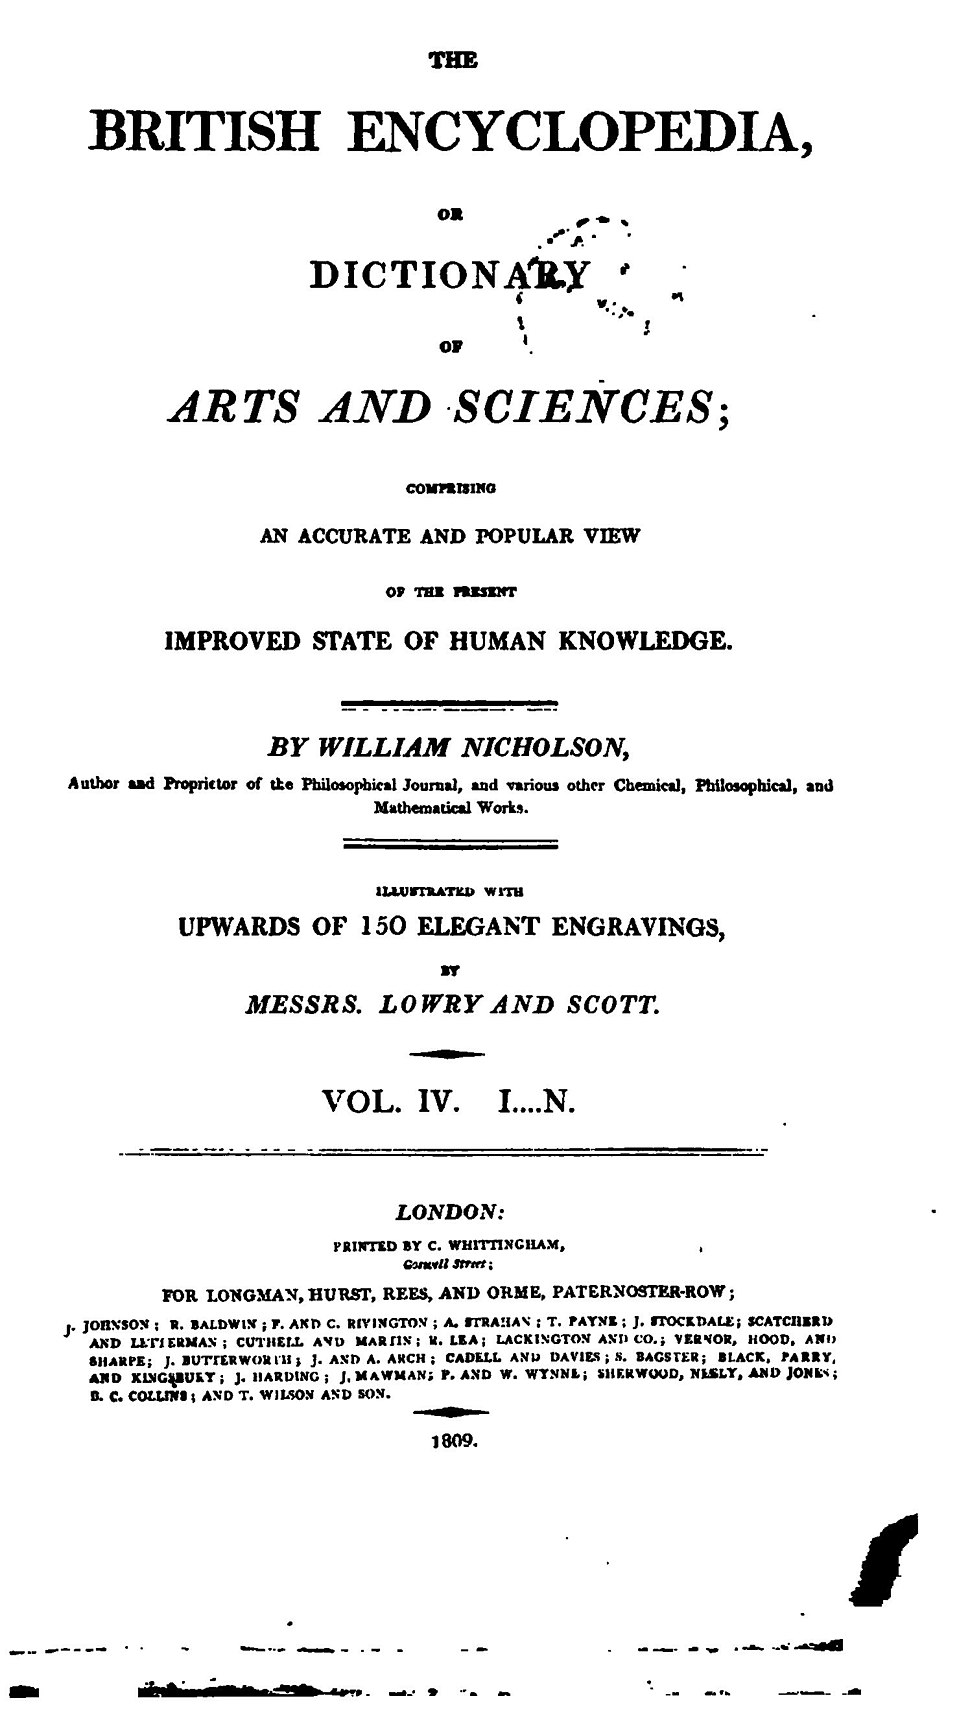 The British Encyclopaedia, or Dictionary of Arts and Sciences, 1809, Vol 4